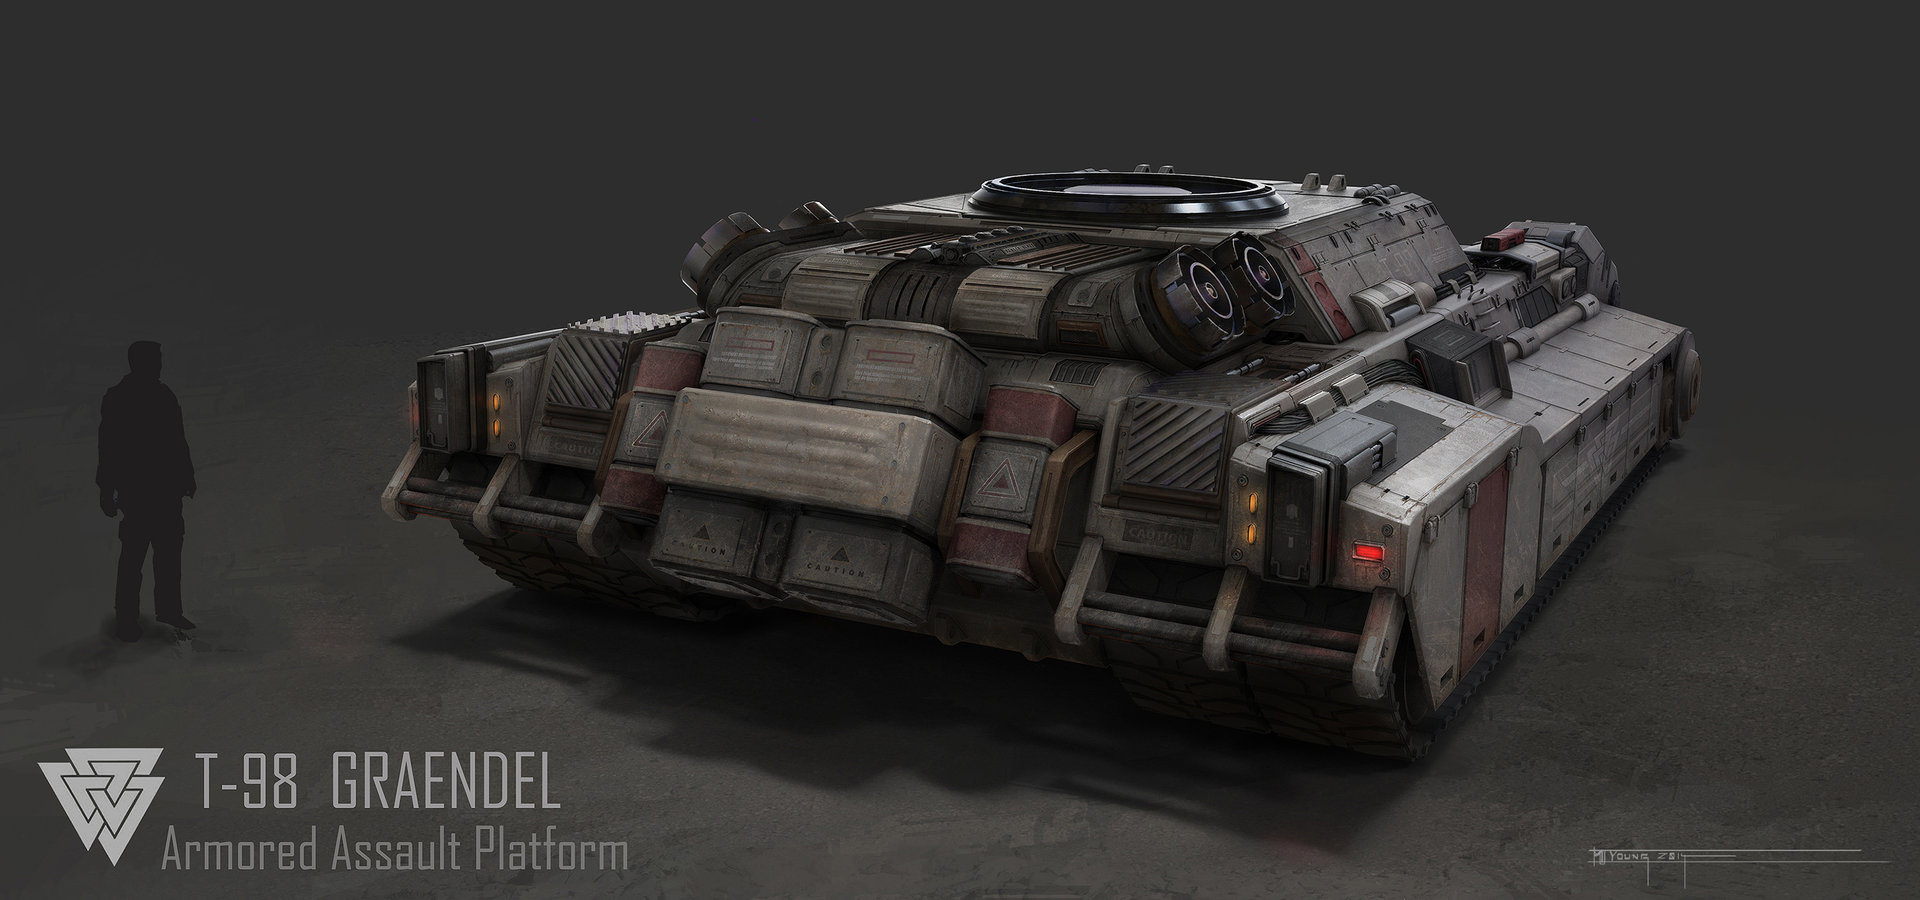 Muyoung kim 6 armor graendal concept back wo turret